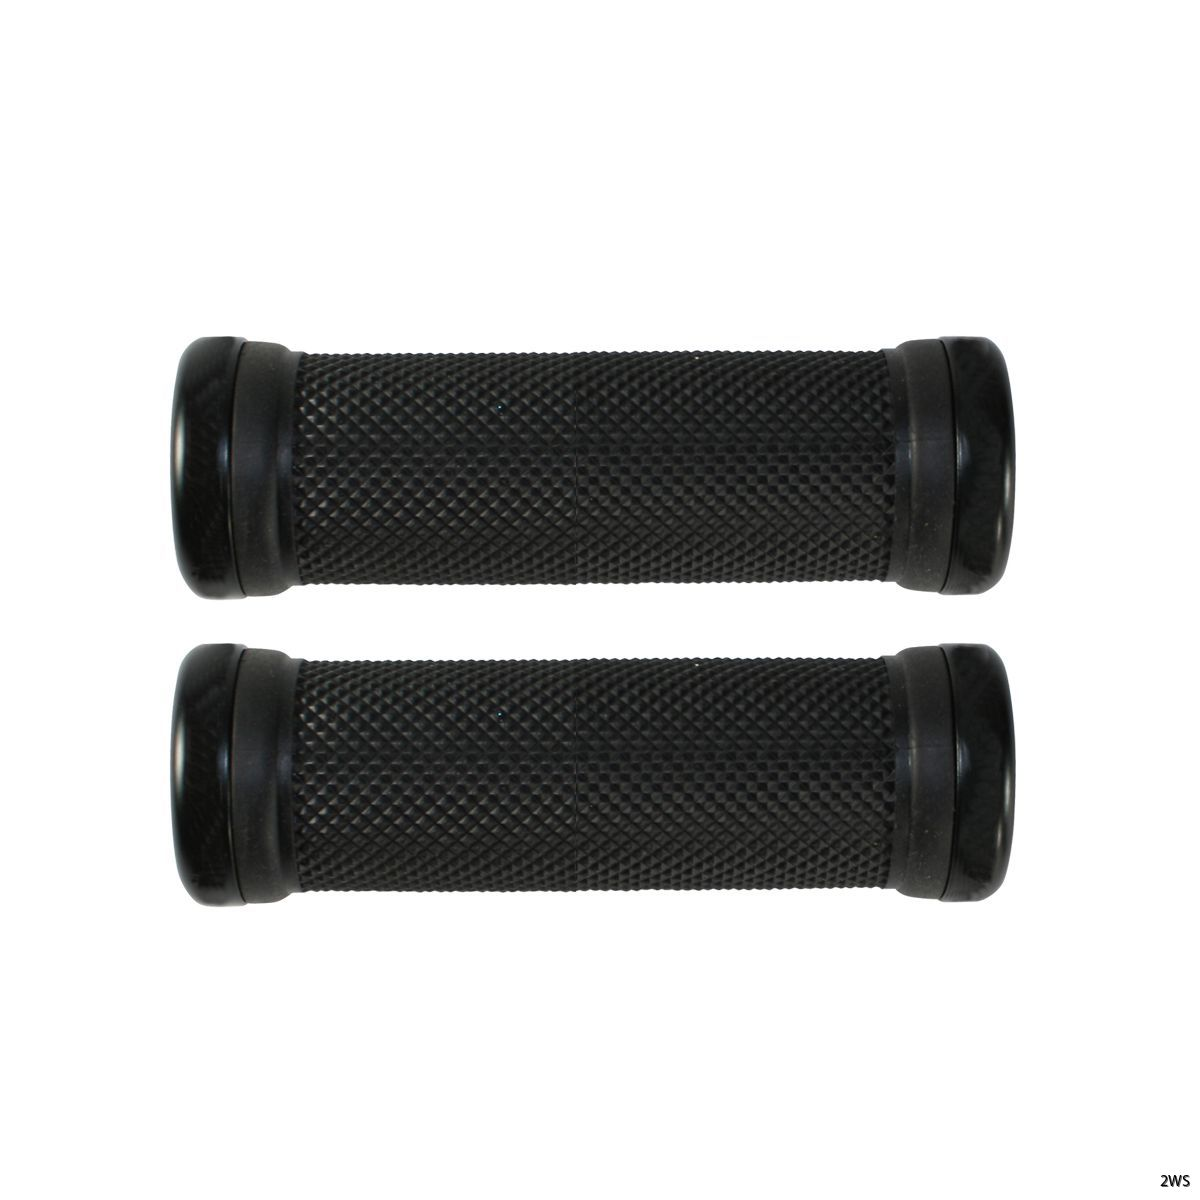 position-one-grips-95mm